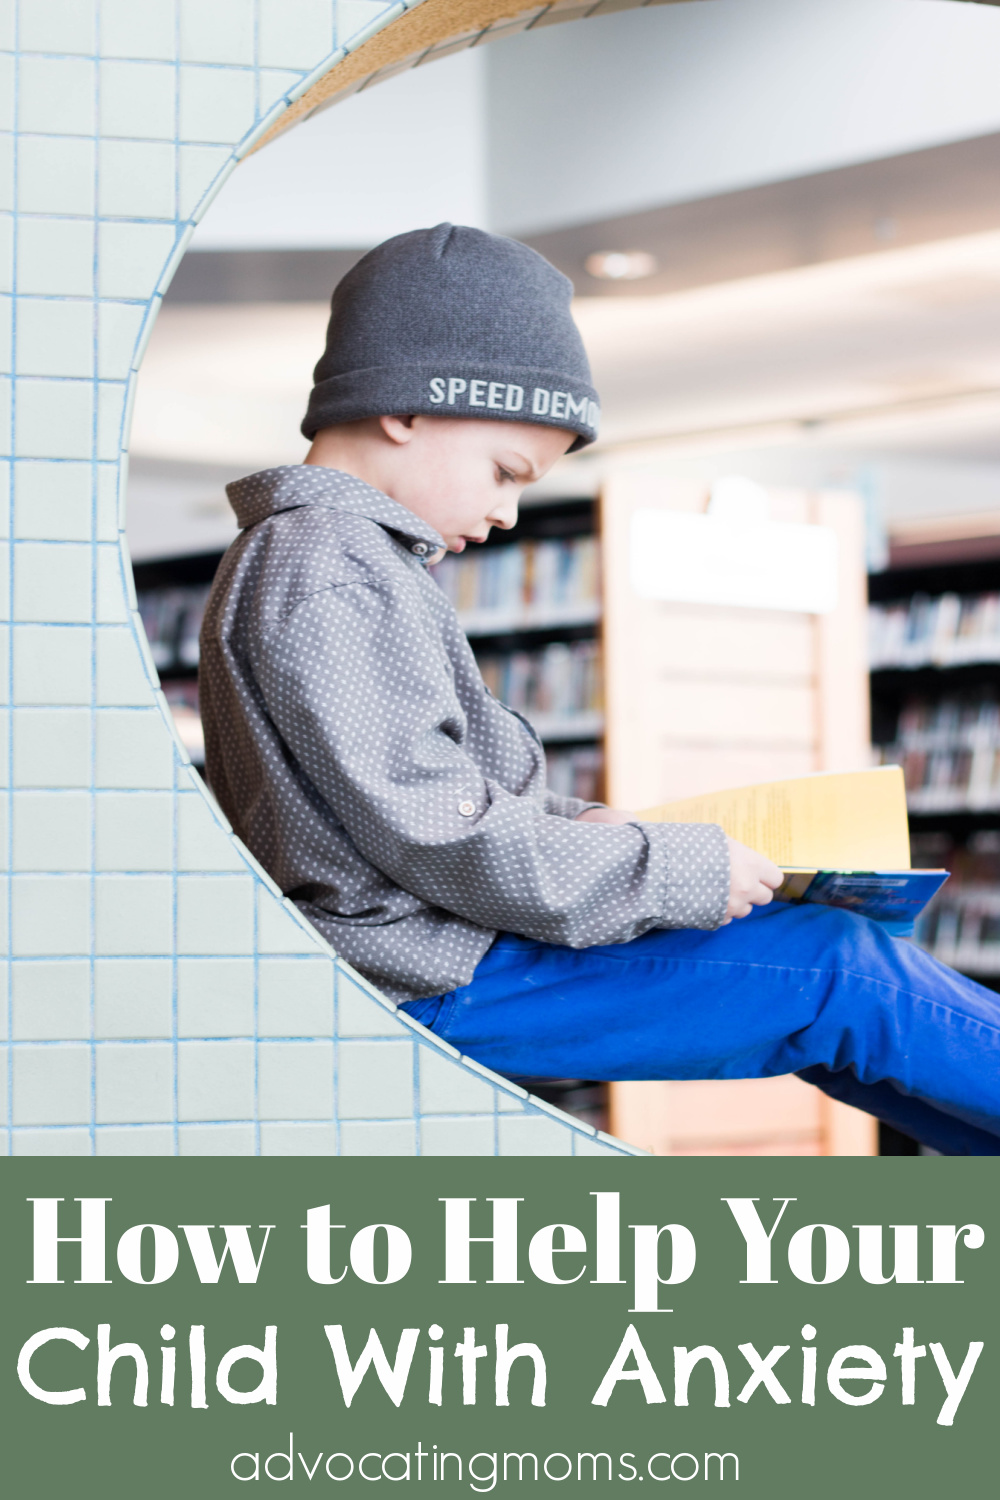 How to help a child with anxiety and depression. Does my child have anxiety quiz. How to help child with anxiety stomach aches. How to help a child with anxiety in the classroom. Child anxiety treatment at home. What to say to a child with anxiety. Anxiety in children under 10. How to help my child stop worrying. #anxiety #mentalhealth #children #coping #selfhelp